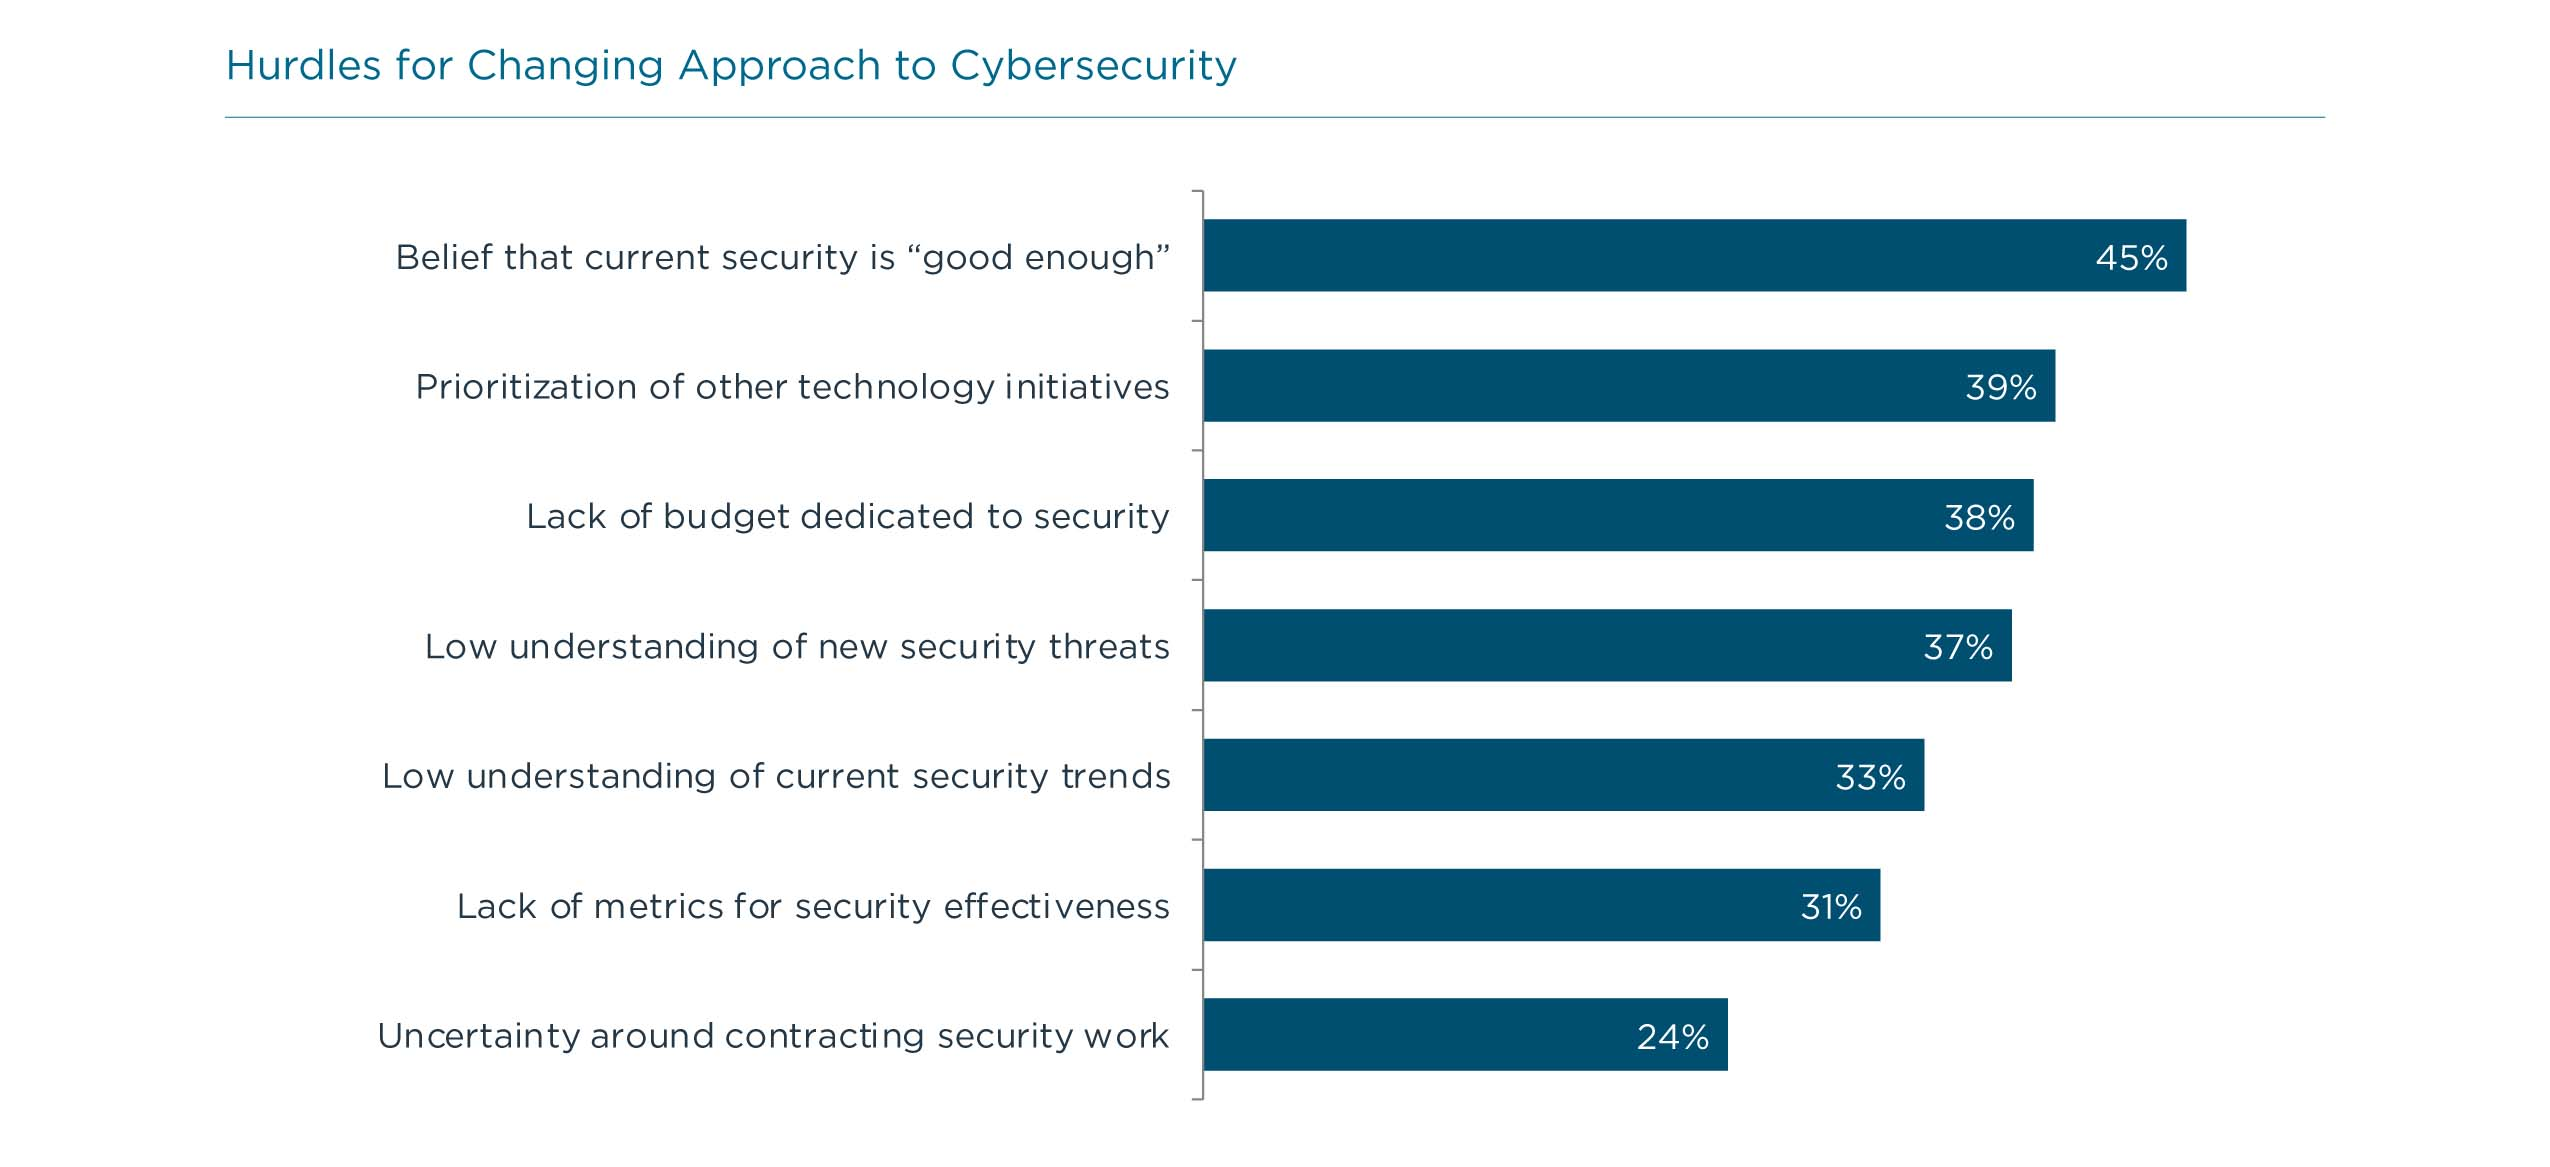 Hurdles for Changing Approach to Cybersecurity